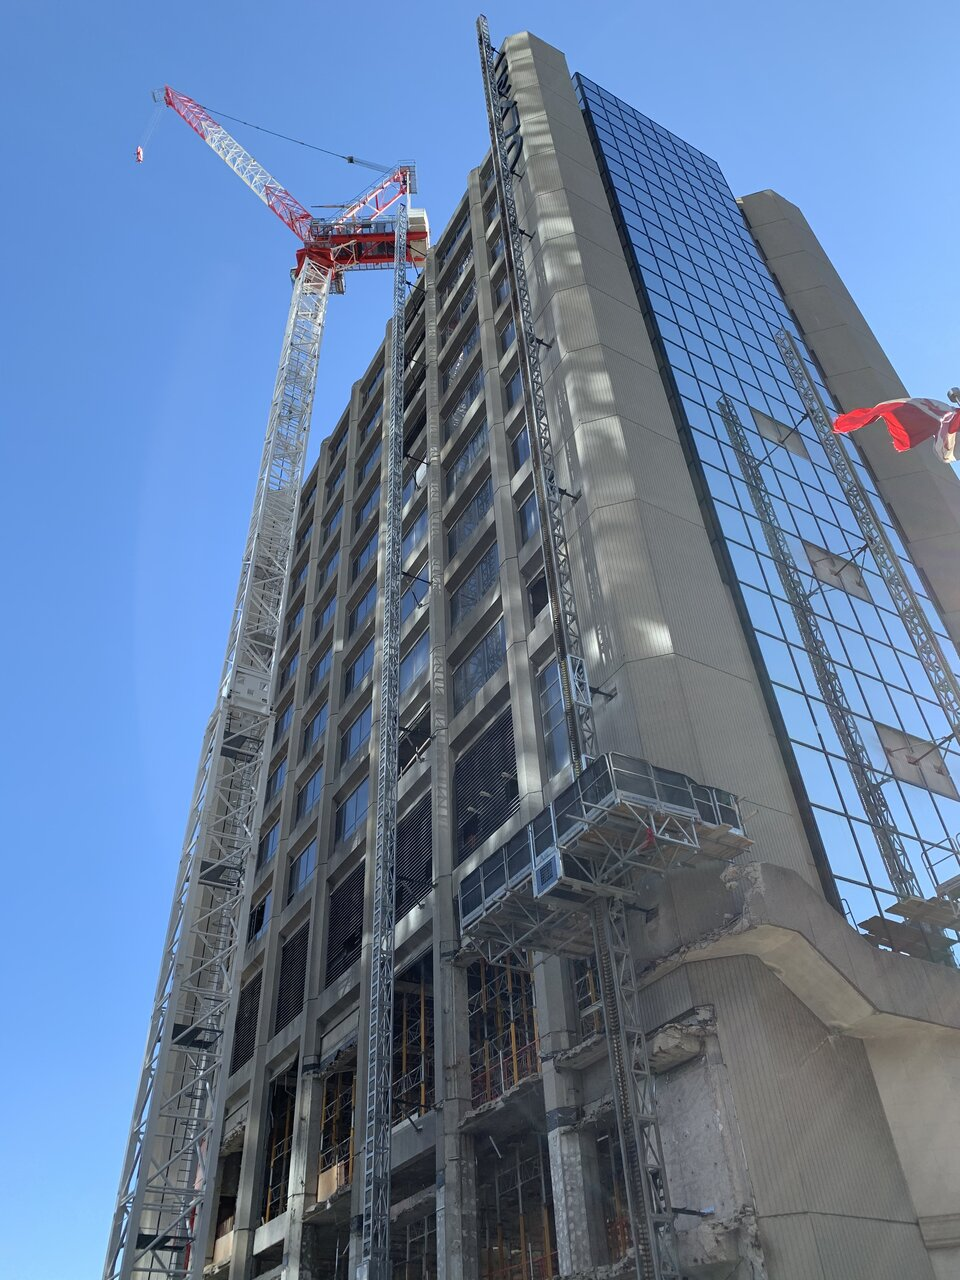 Looking up at demolition on the Grand Hotel, October 31, 2020, image by UT Forum contributor Benito